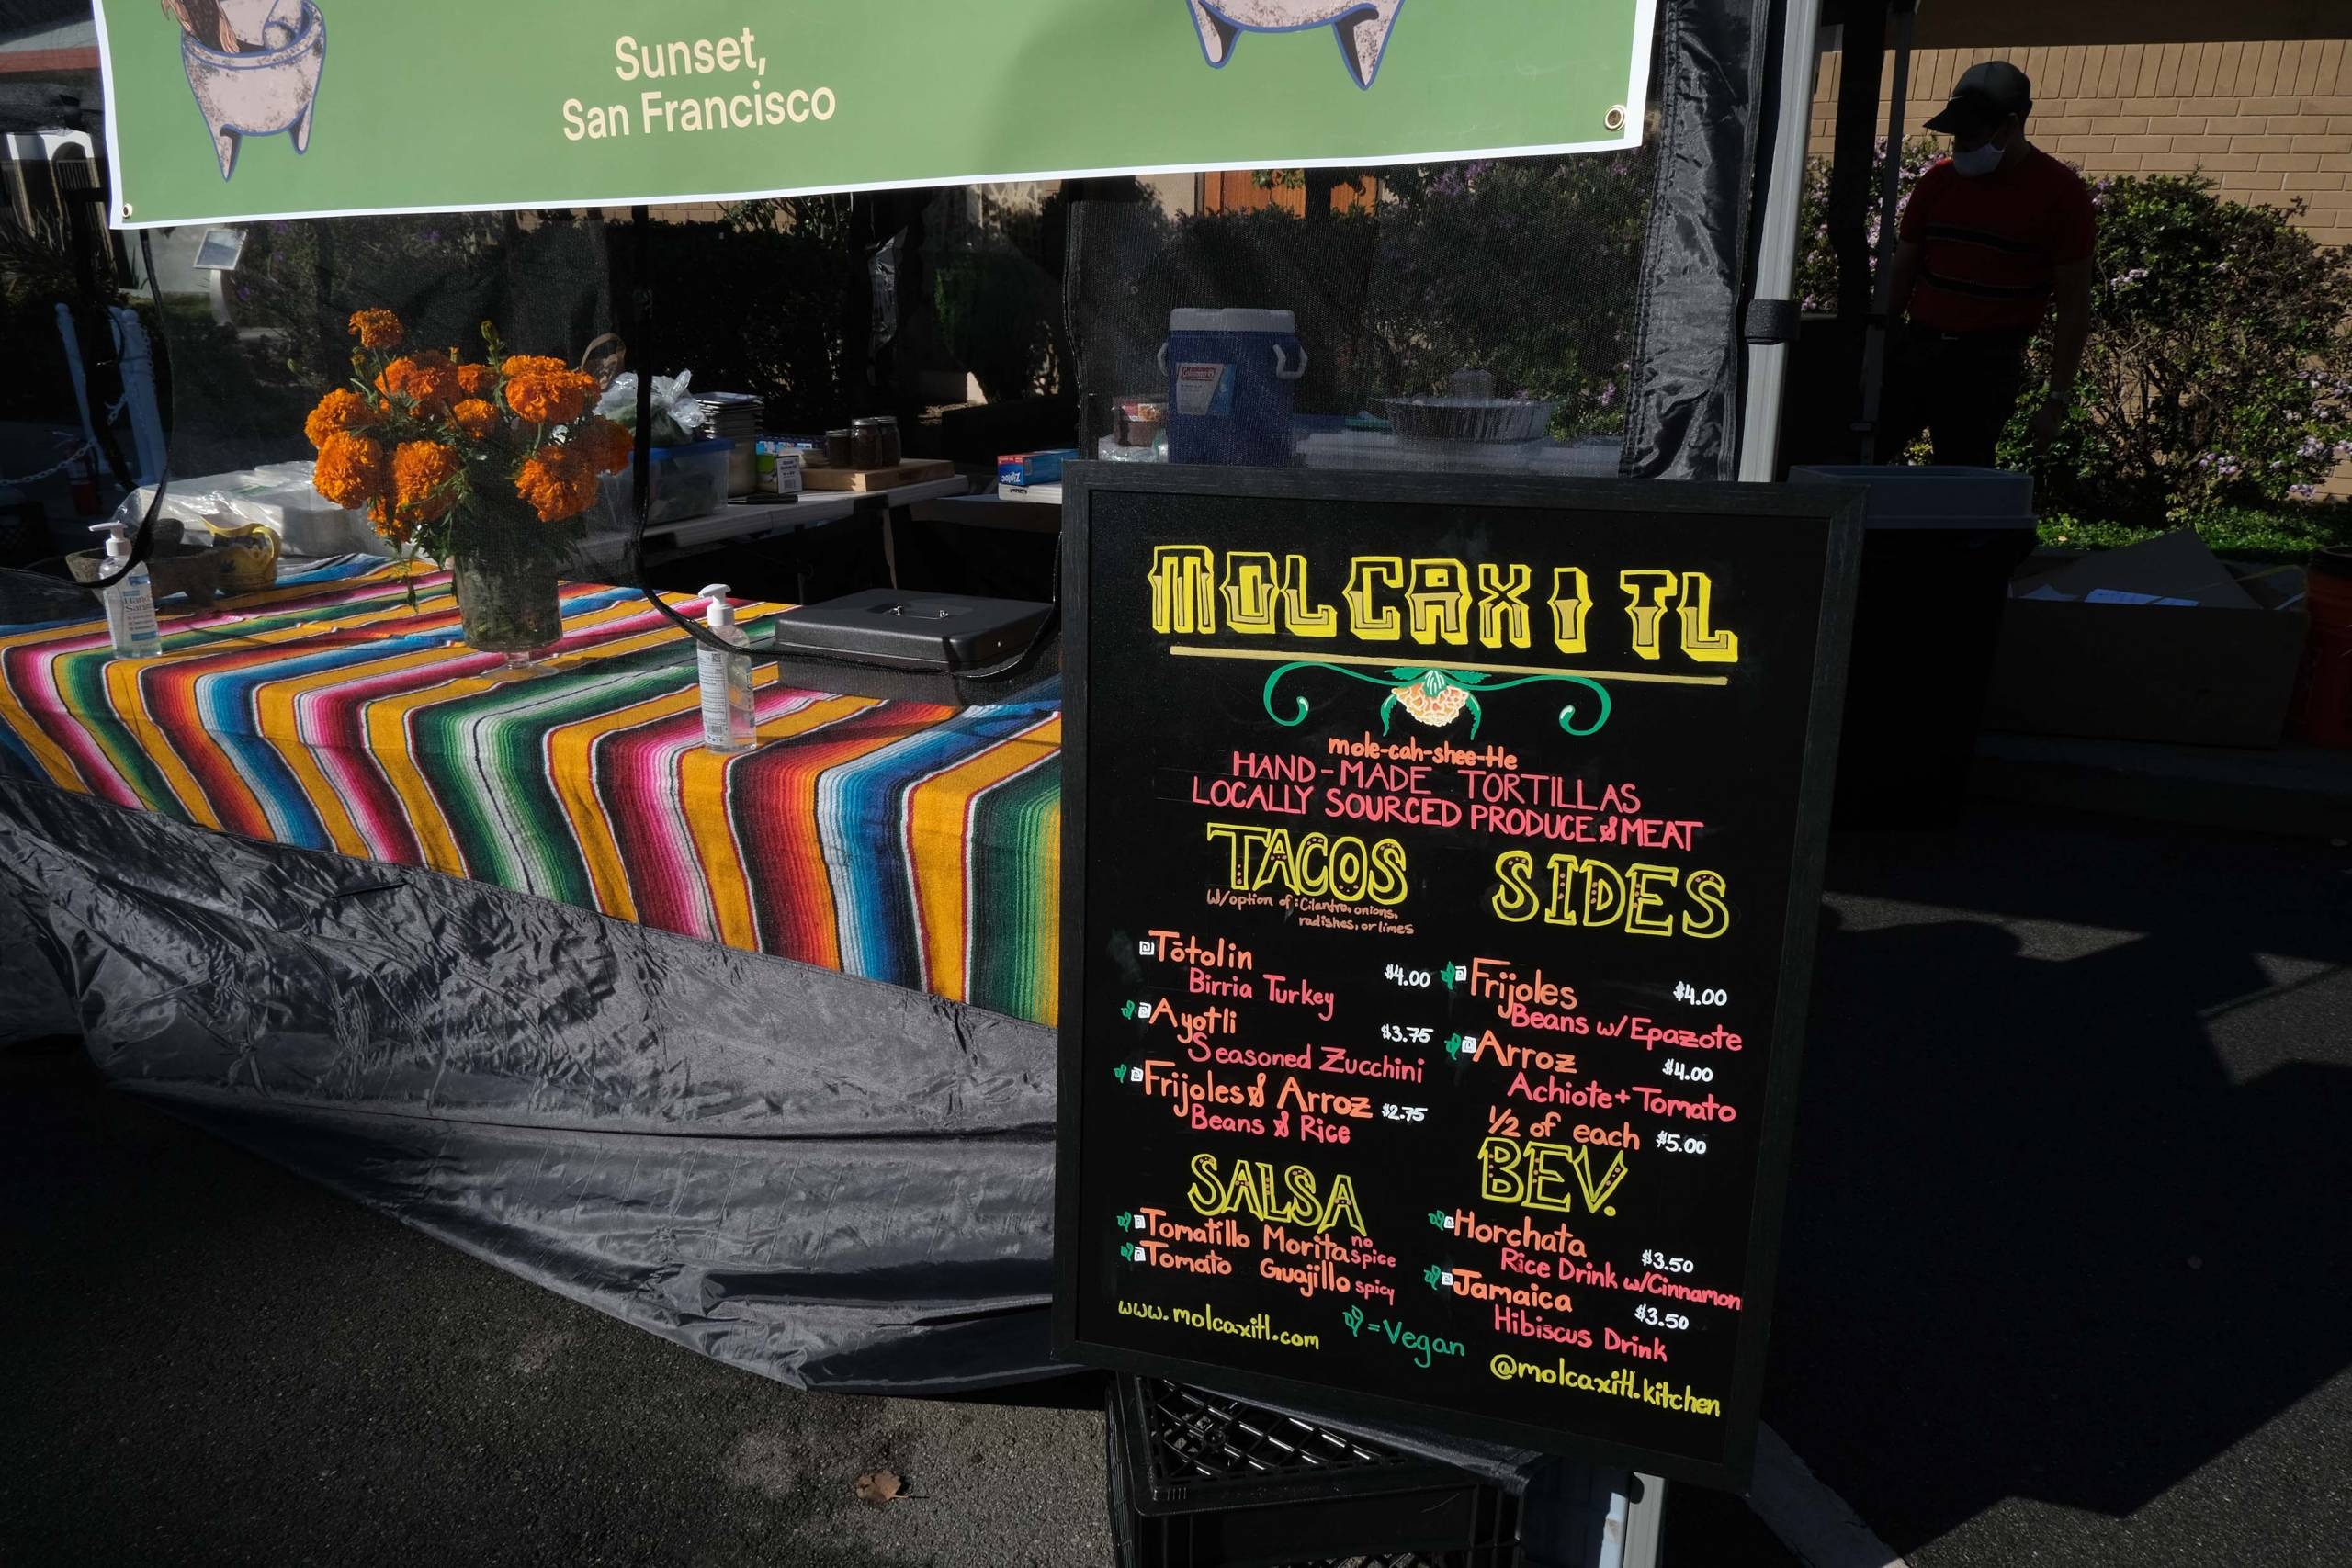 The menu board for Molcaxitl set up in front of the Outer Sunset farmers market stand